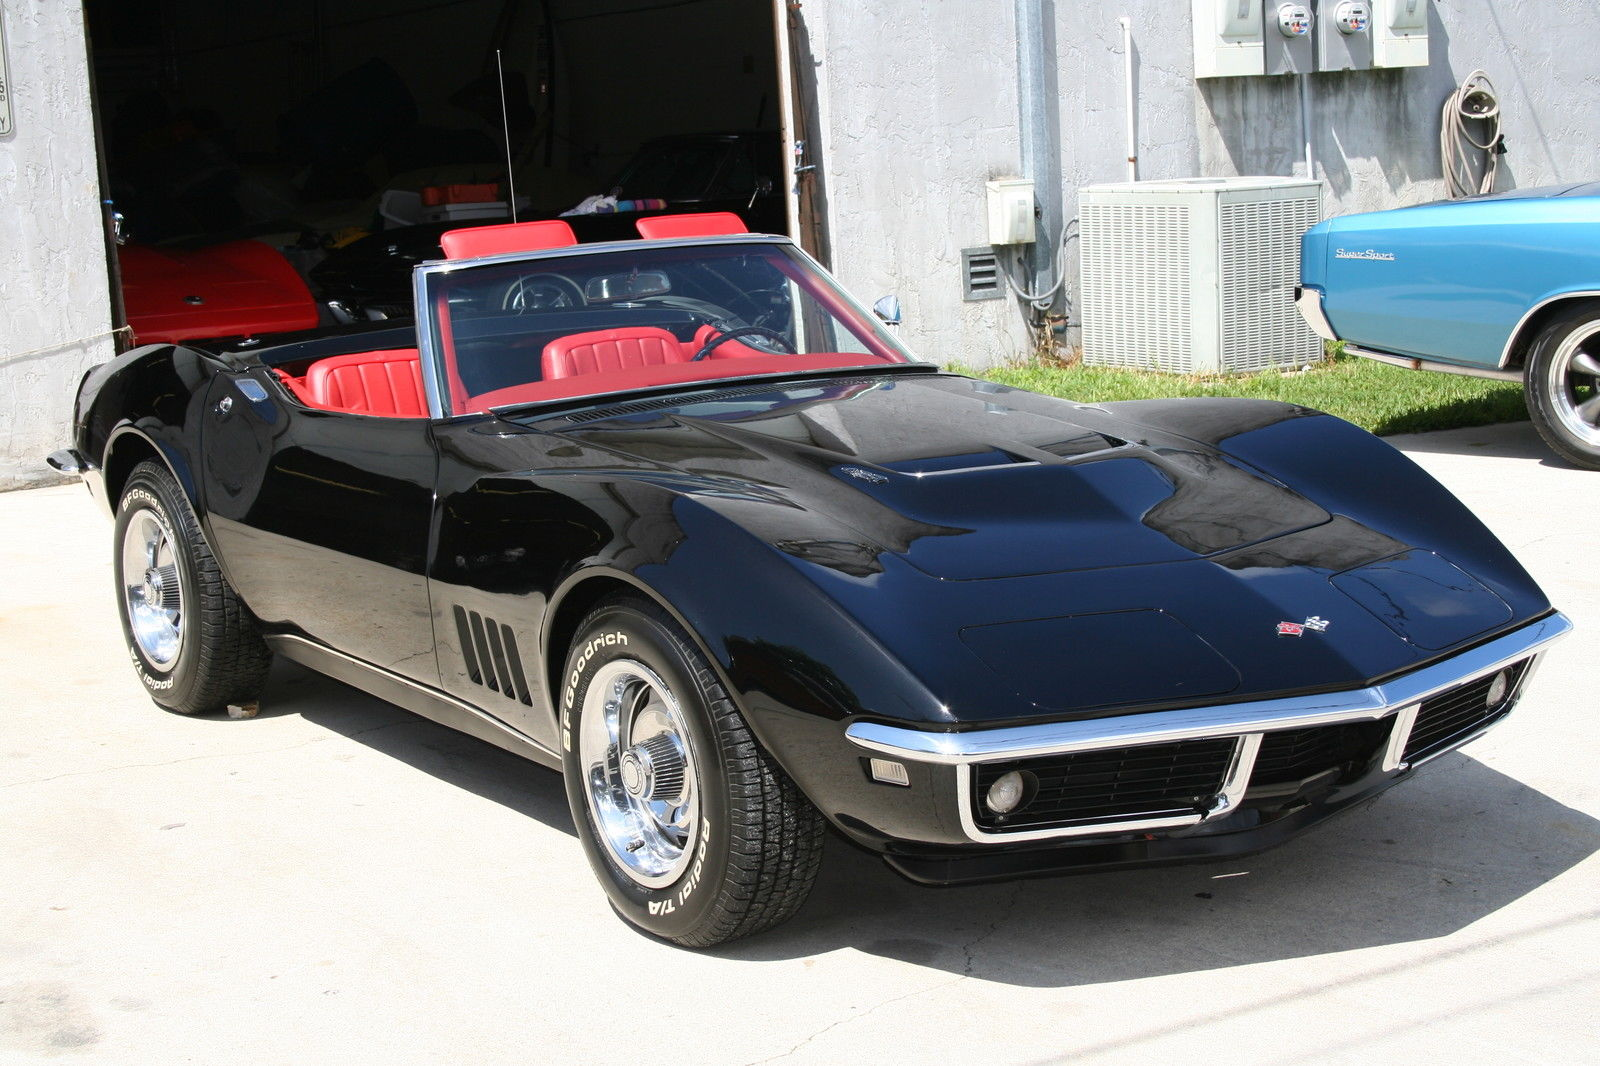 1968 corvette convertible 427 435hp tri power number matching 4 speed trans classic chevrolet. Black Bedroom Furniture Sets. Home Design Ideas